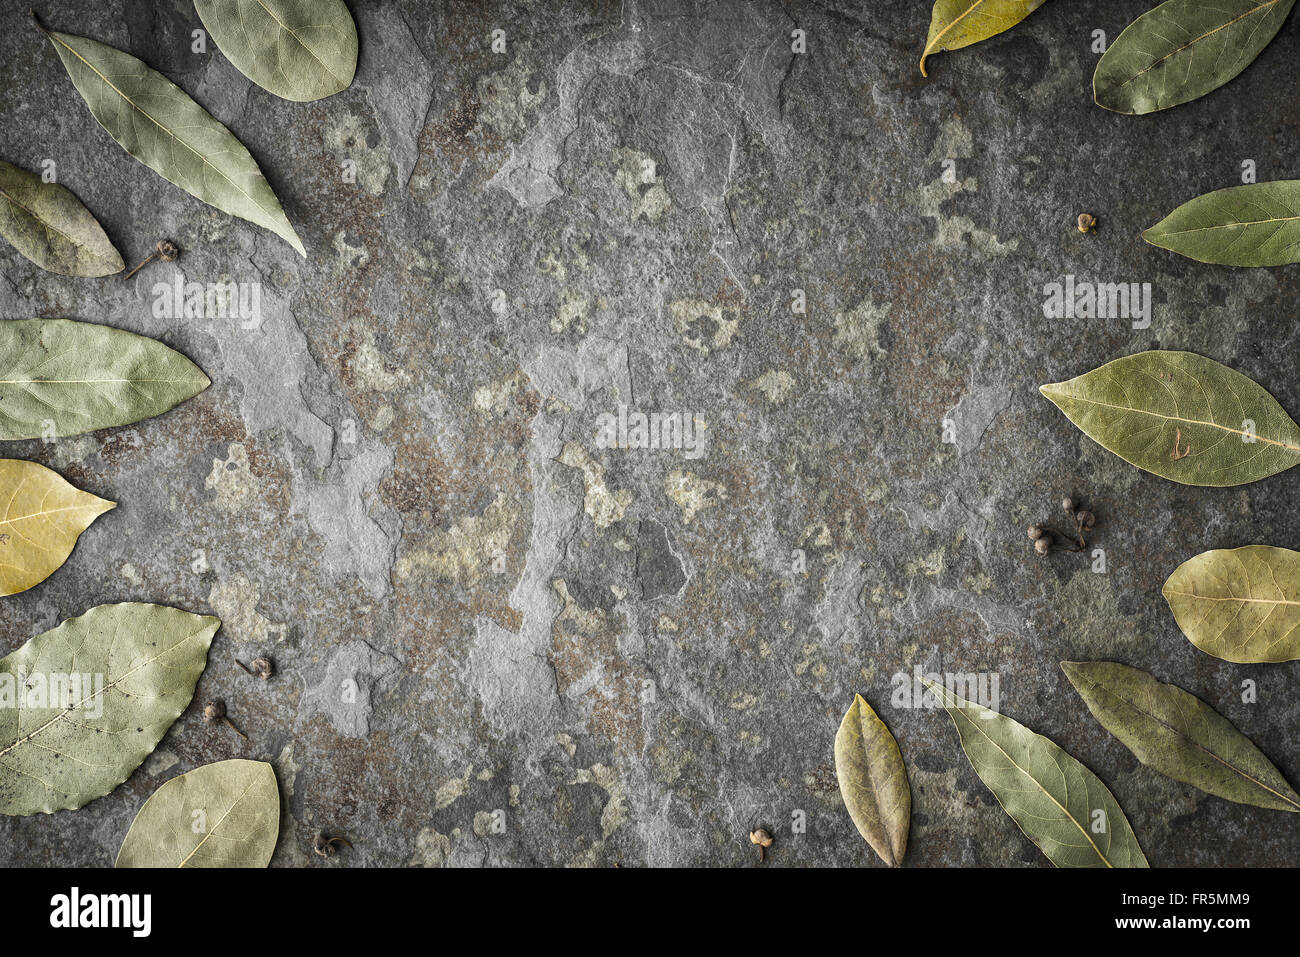 Leaves of the tree of the laurel on the stone table horizontal - Stock Image